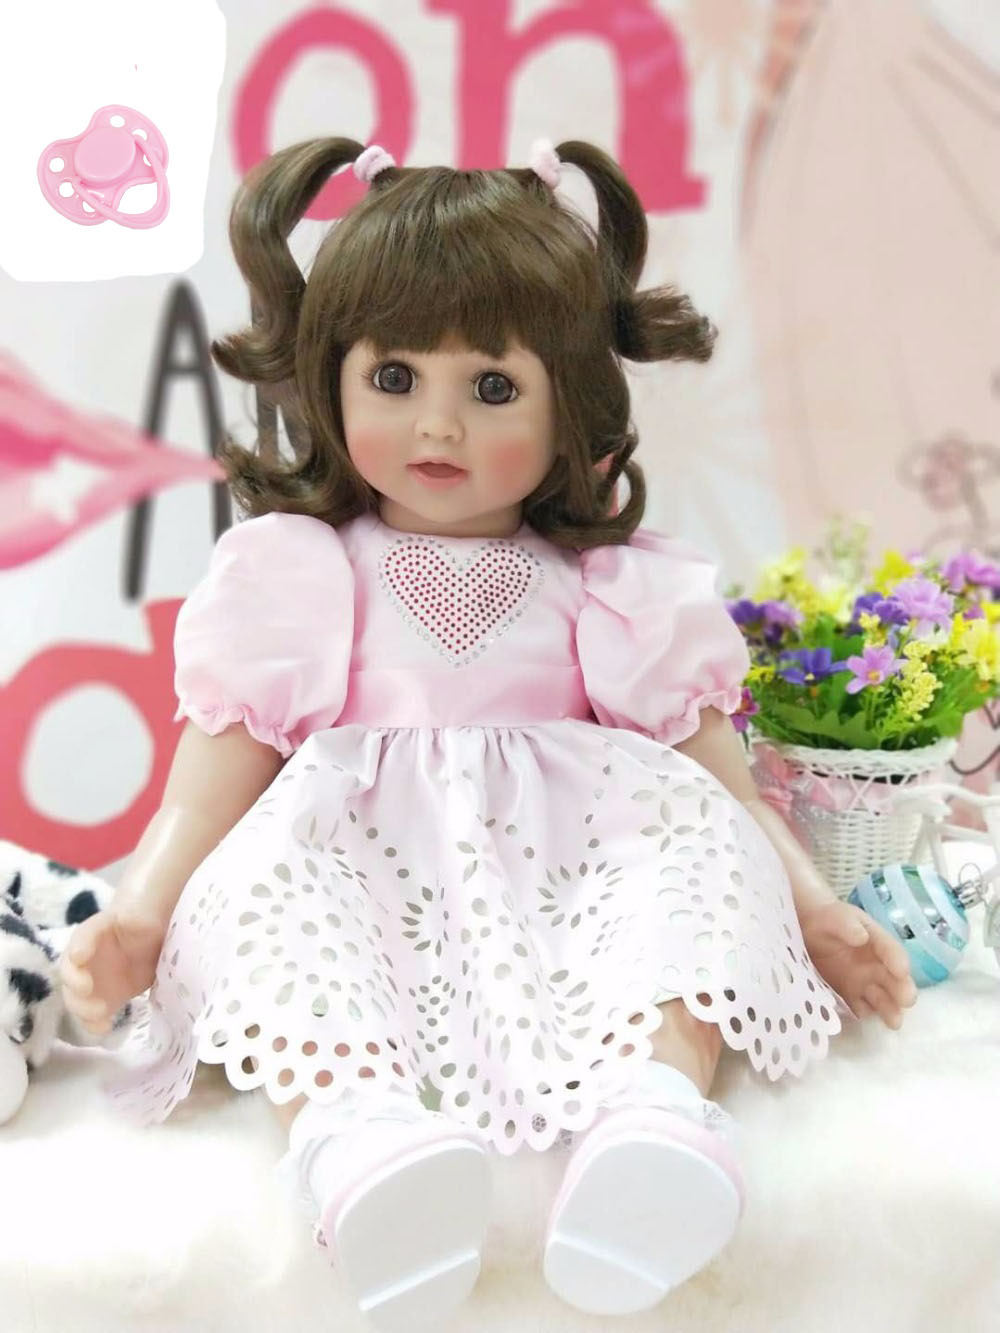 60cm Silicone Reborn Baby Girl Doll Toys 24inch Vinyl Smile Princess Toddler Babies Dolls Birthday Gift Present Play House Toy 60cm silicone vinyl reborn girl baby doll toys 24inch princess toddler babies dolls child fashion birthday gift play house toy